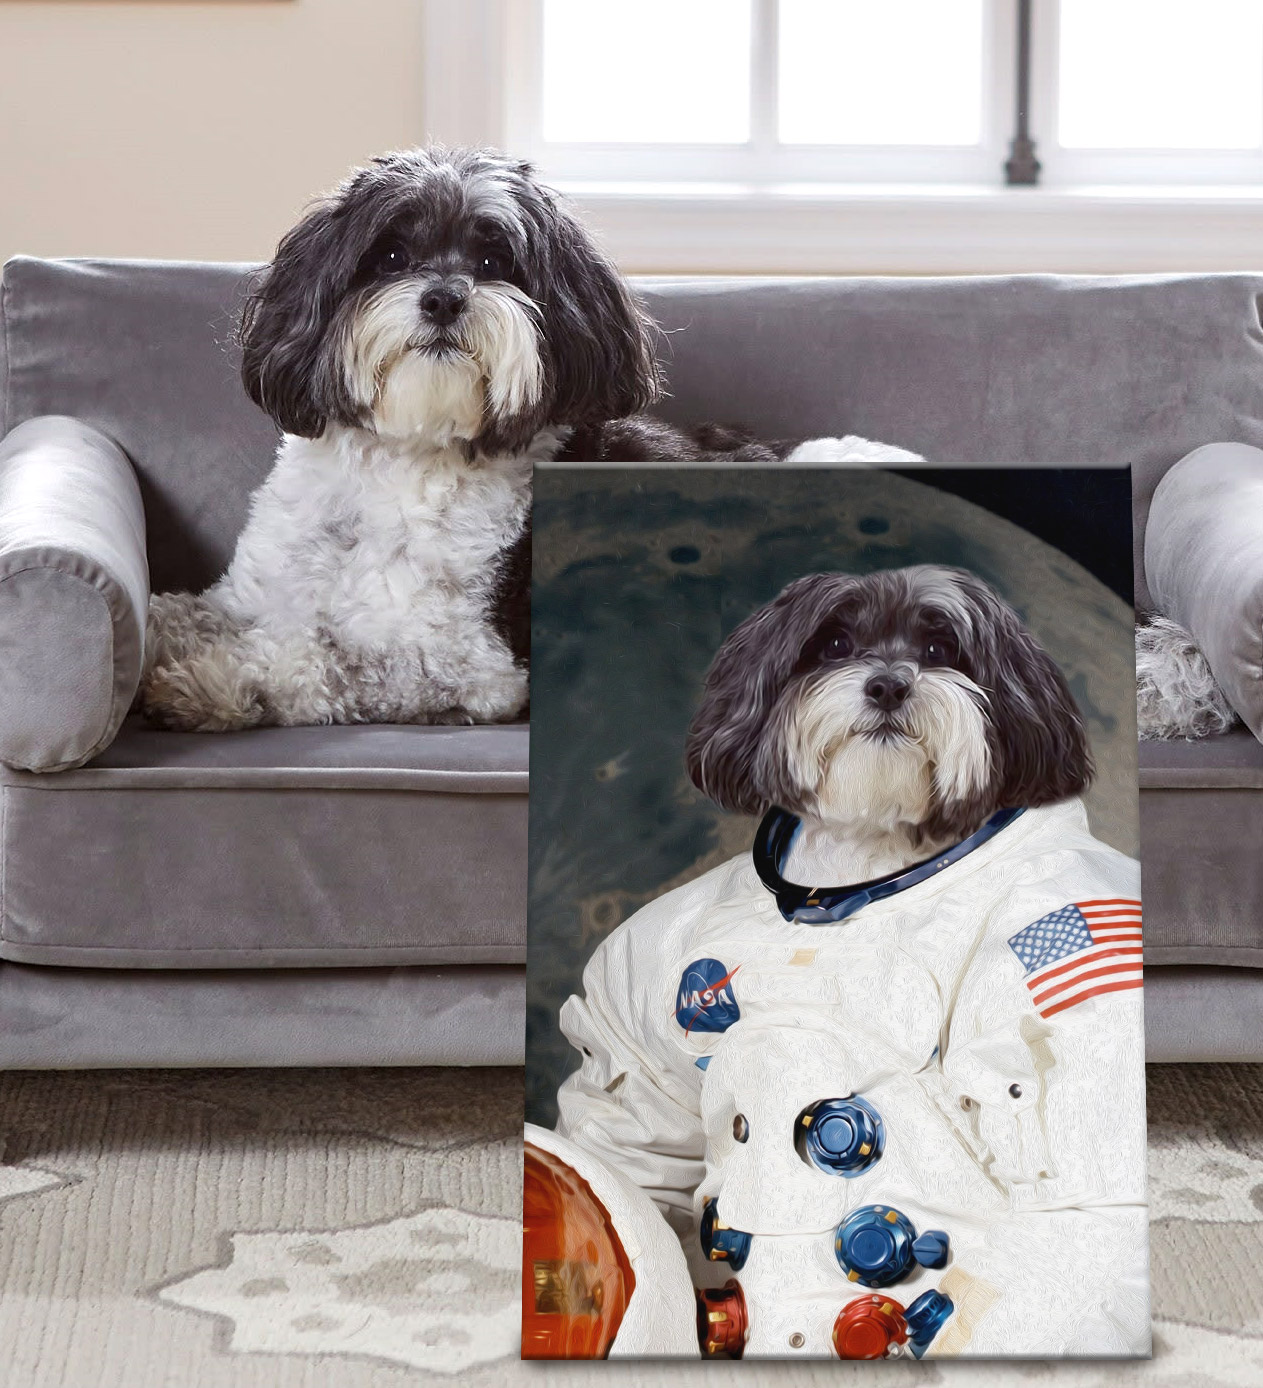 Buy a Personalised Framed Astronaut Pet Portrait | The Astronaut 2